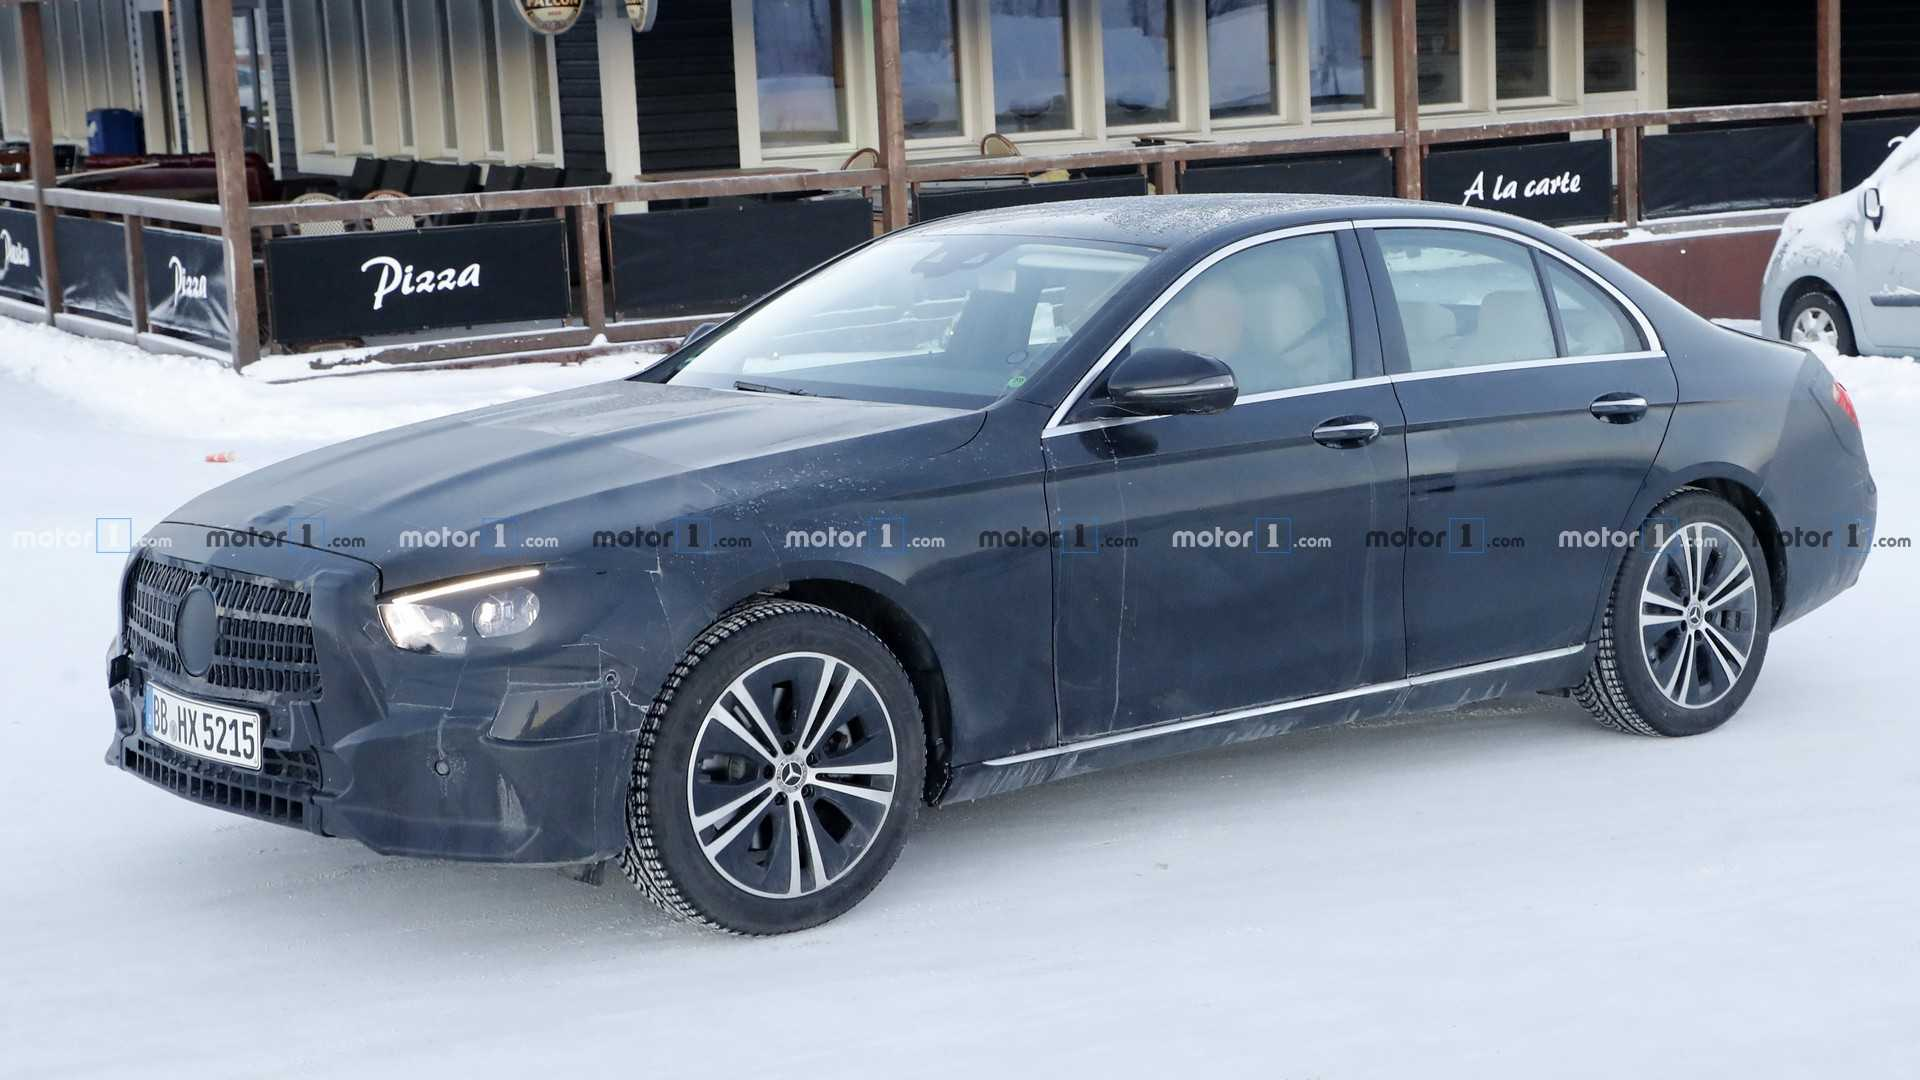 55 The Best 2020 Mercedes Cls Class Review And Release Date